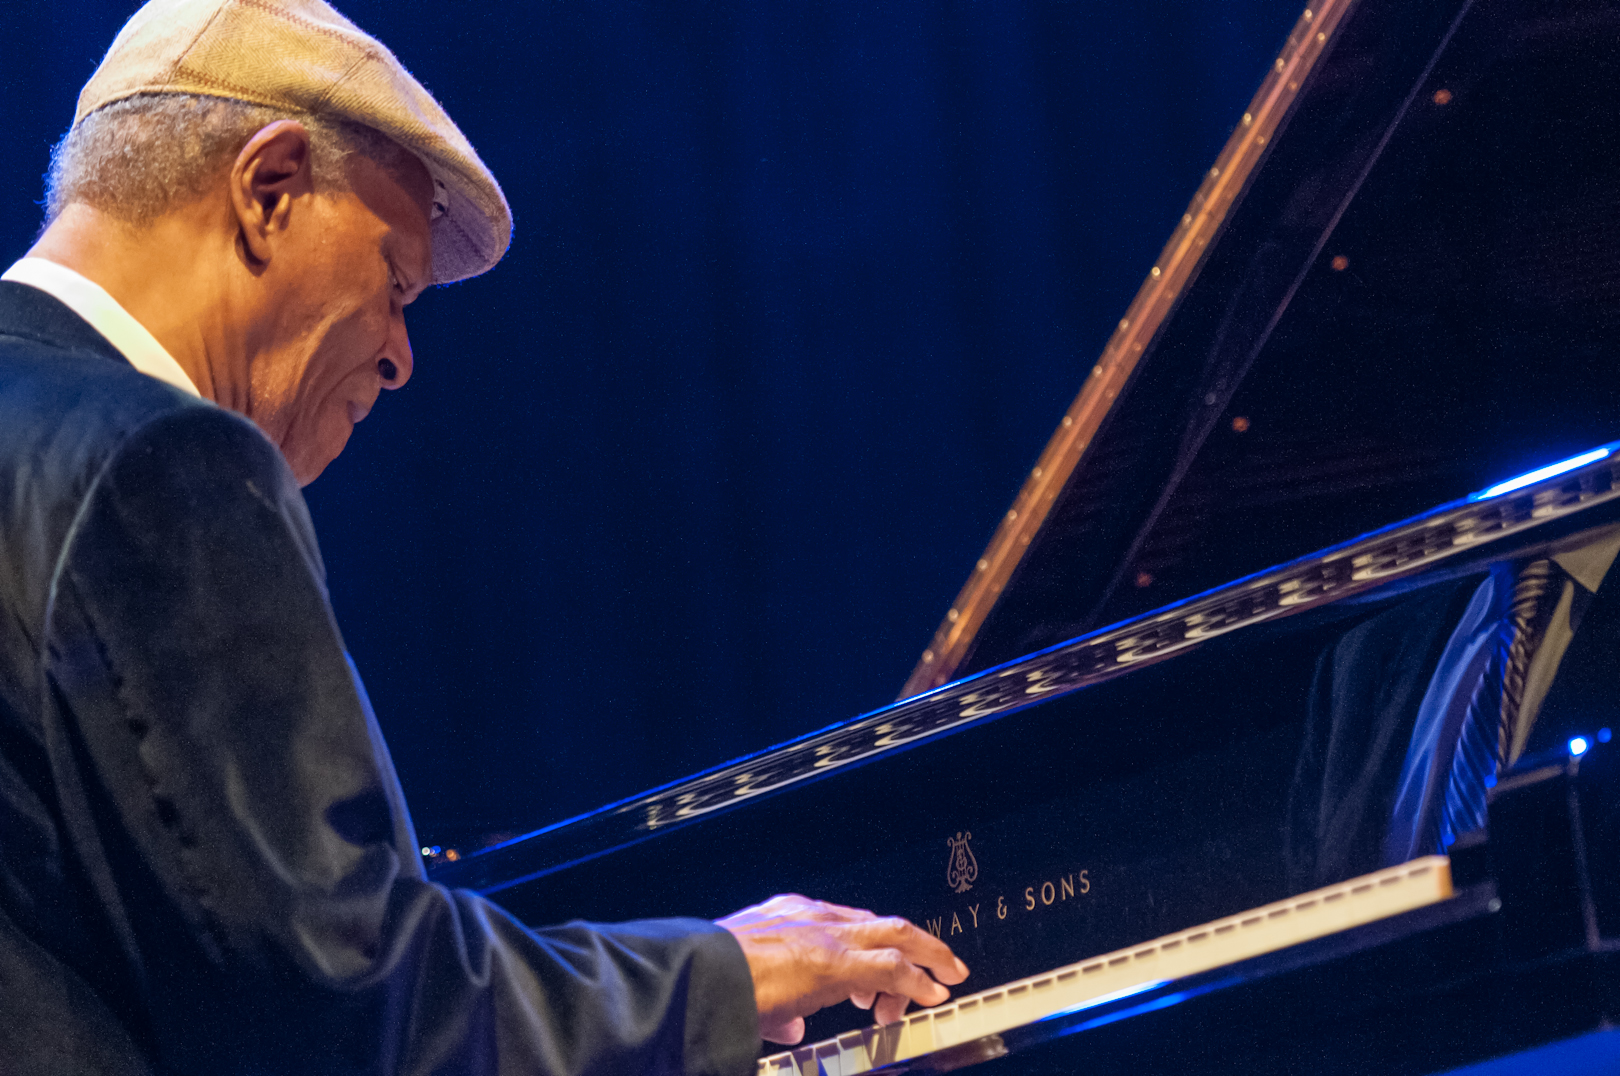 McCoy Tyner at Jazz for Obama at Symphony Space